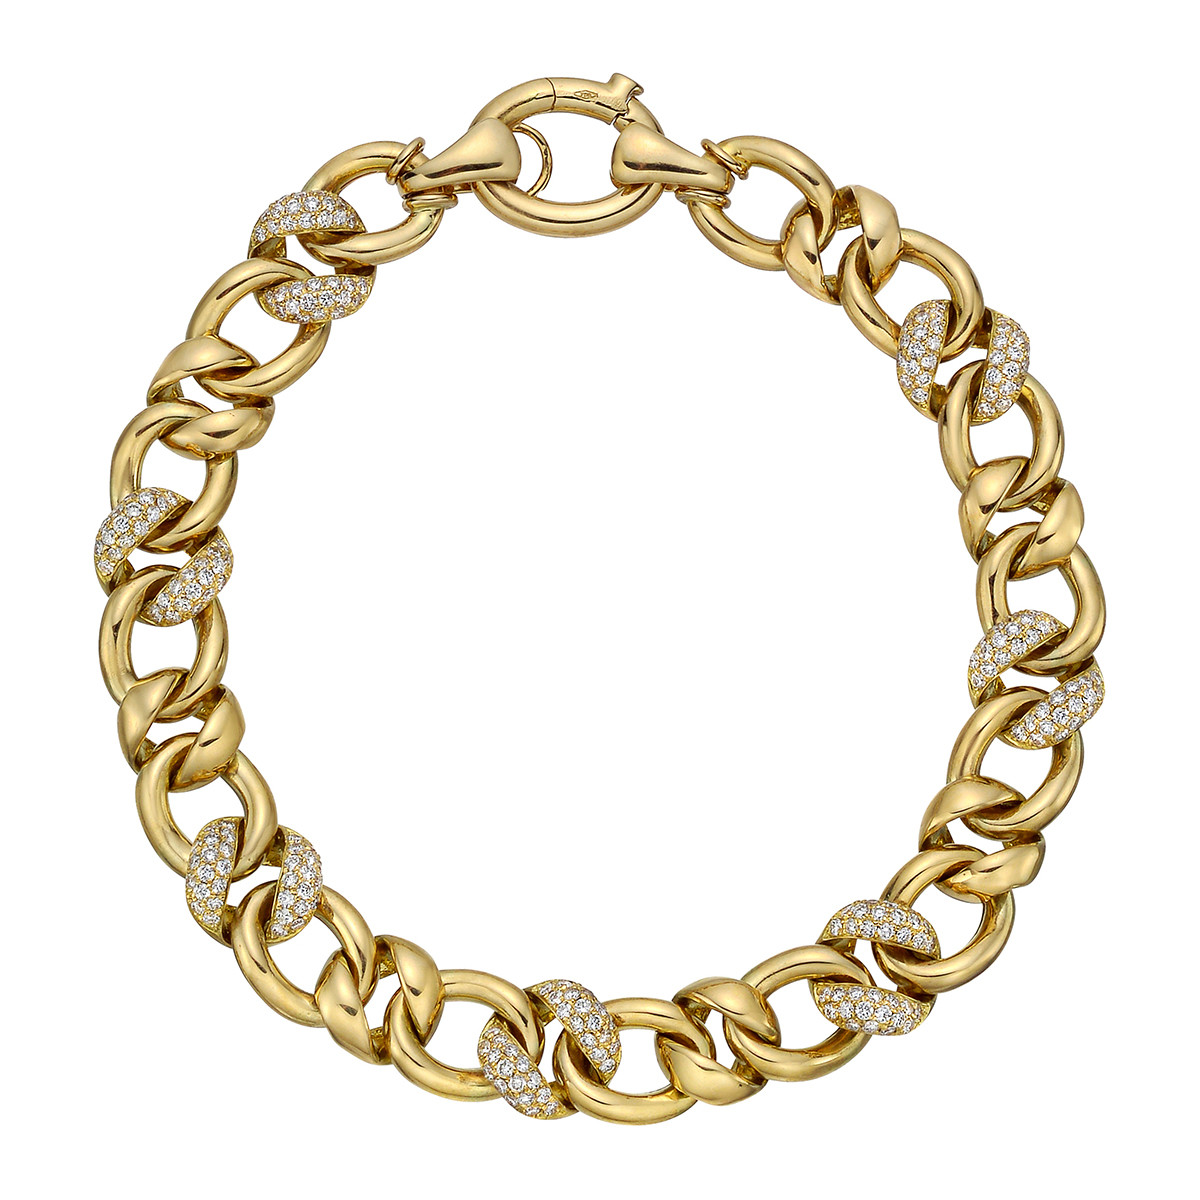 18k Yellow Gold & Pavé Diamond Link Bracelet